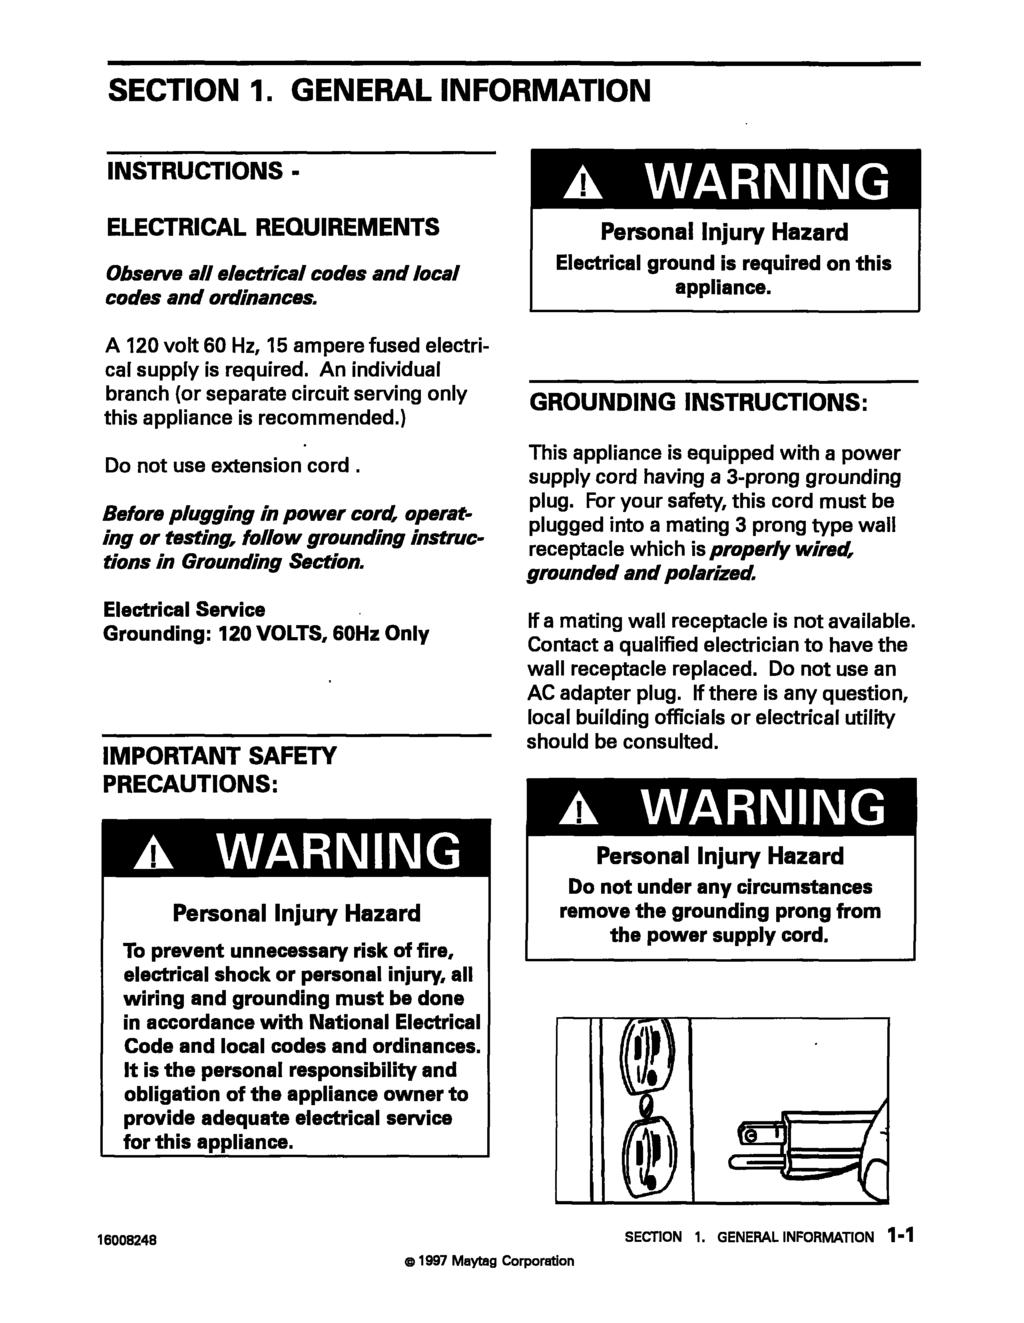 Maytag Customer Service Refrigeration Manual New Cabinet A C Condenser Wiring Diagram General Information Instructions Electrical Requirements Observe All Codes And Local